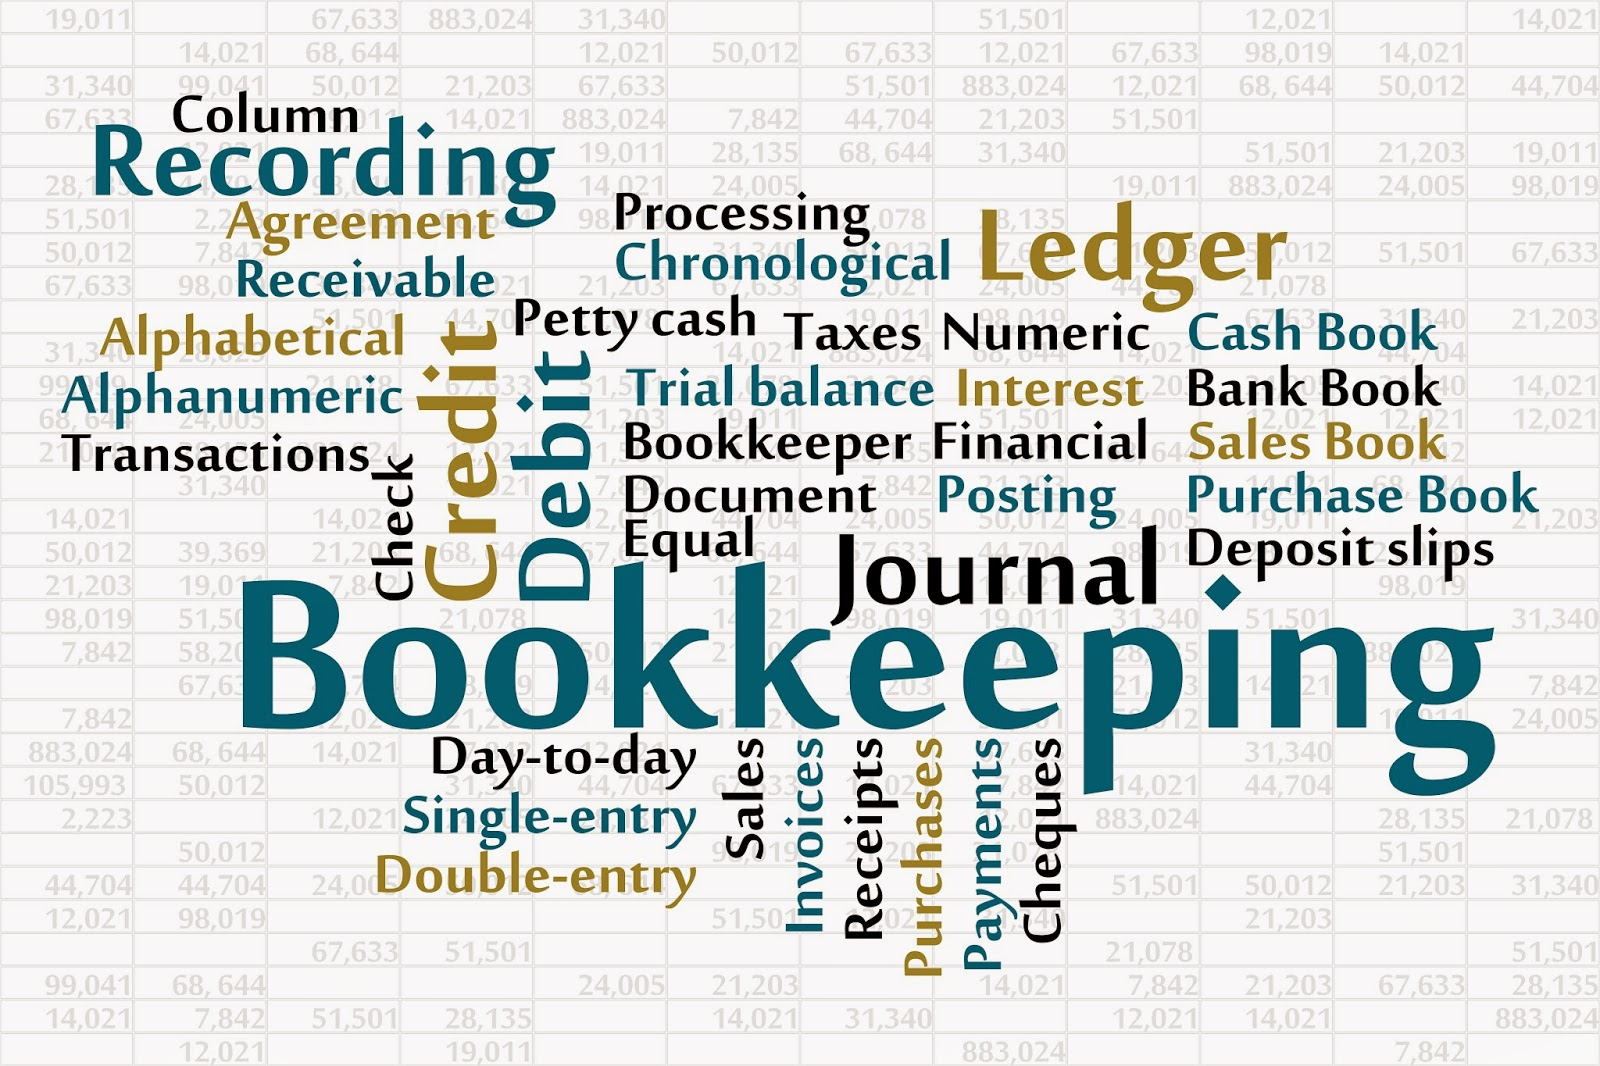 Journal entry, receivable and ledger tracking